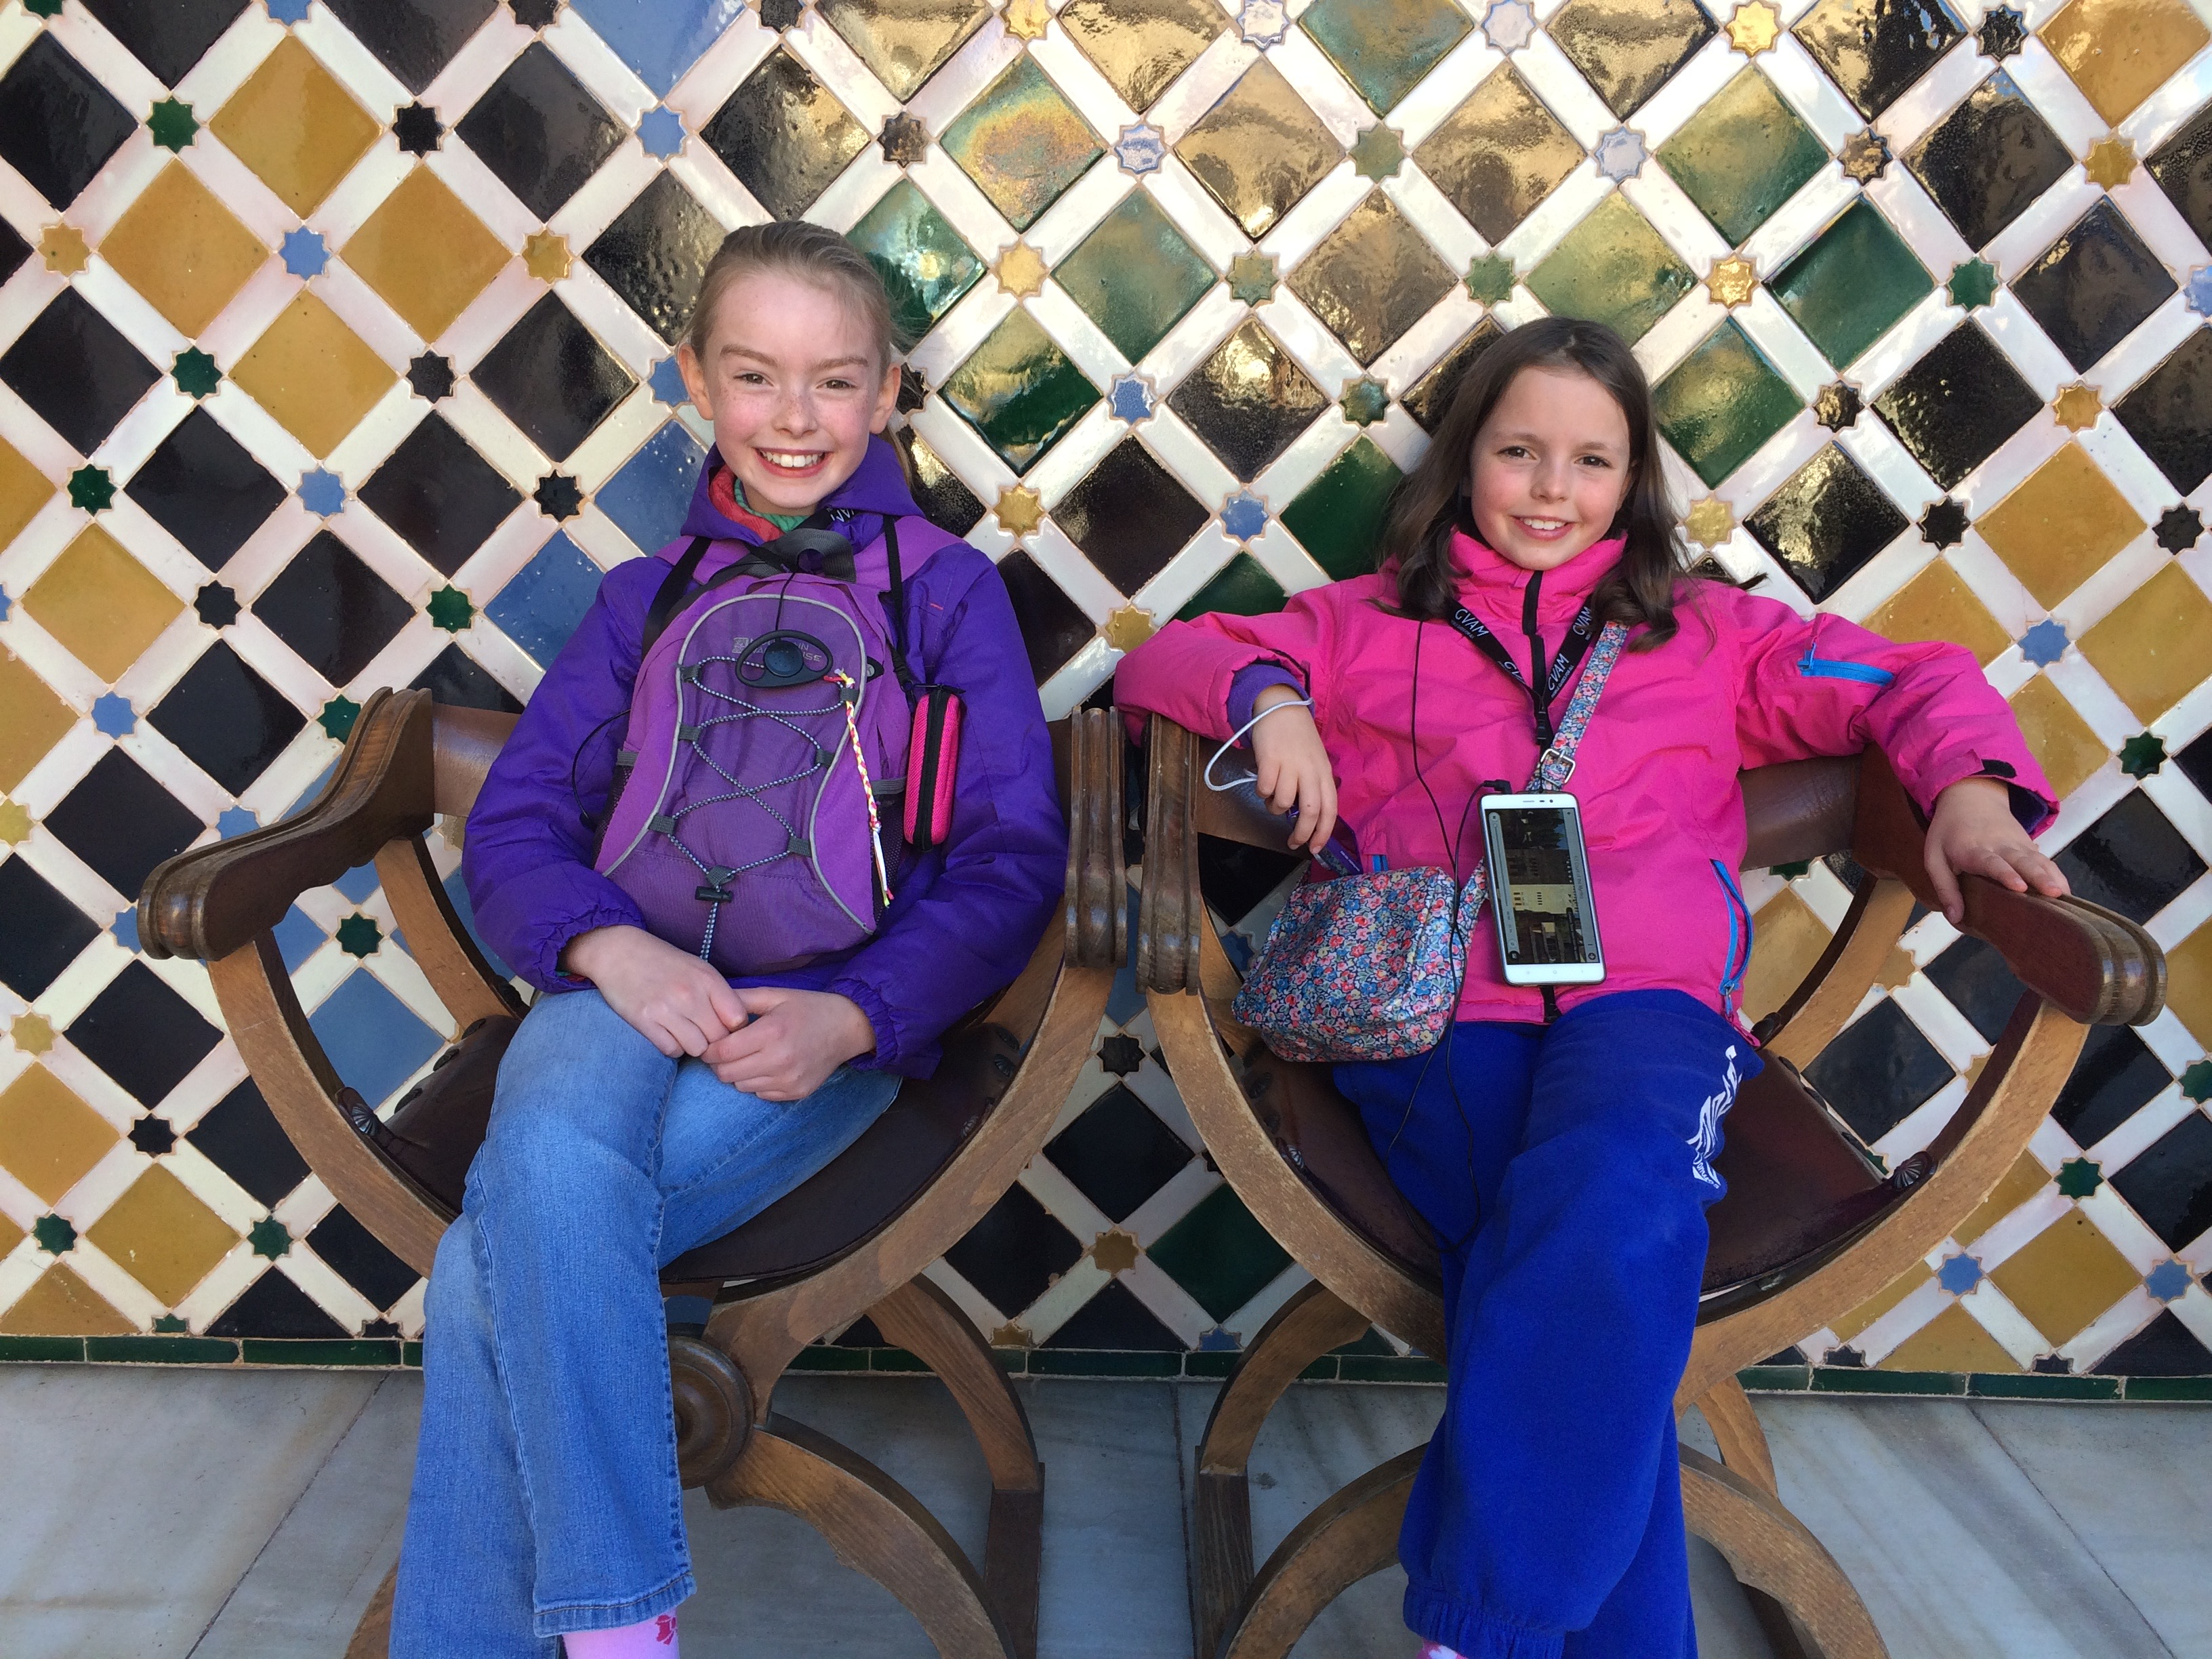 Alhambra Granada Spain - relaxing in the Court of the Myrtles